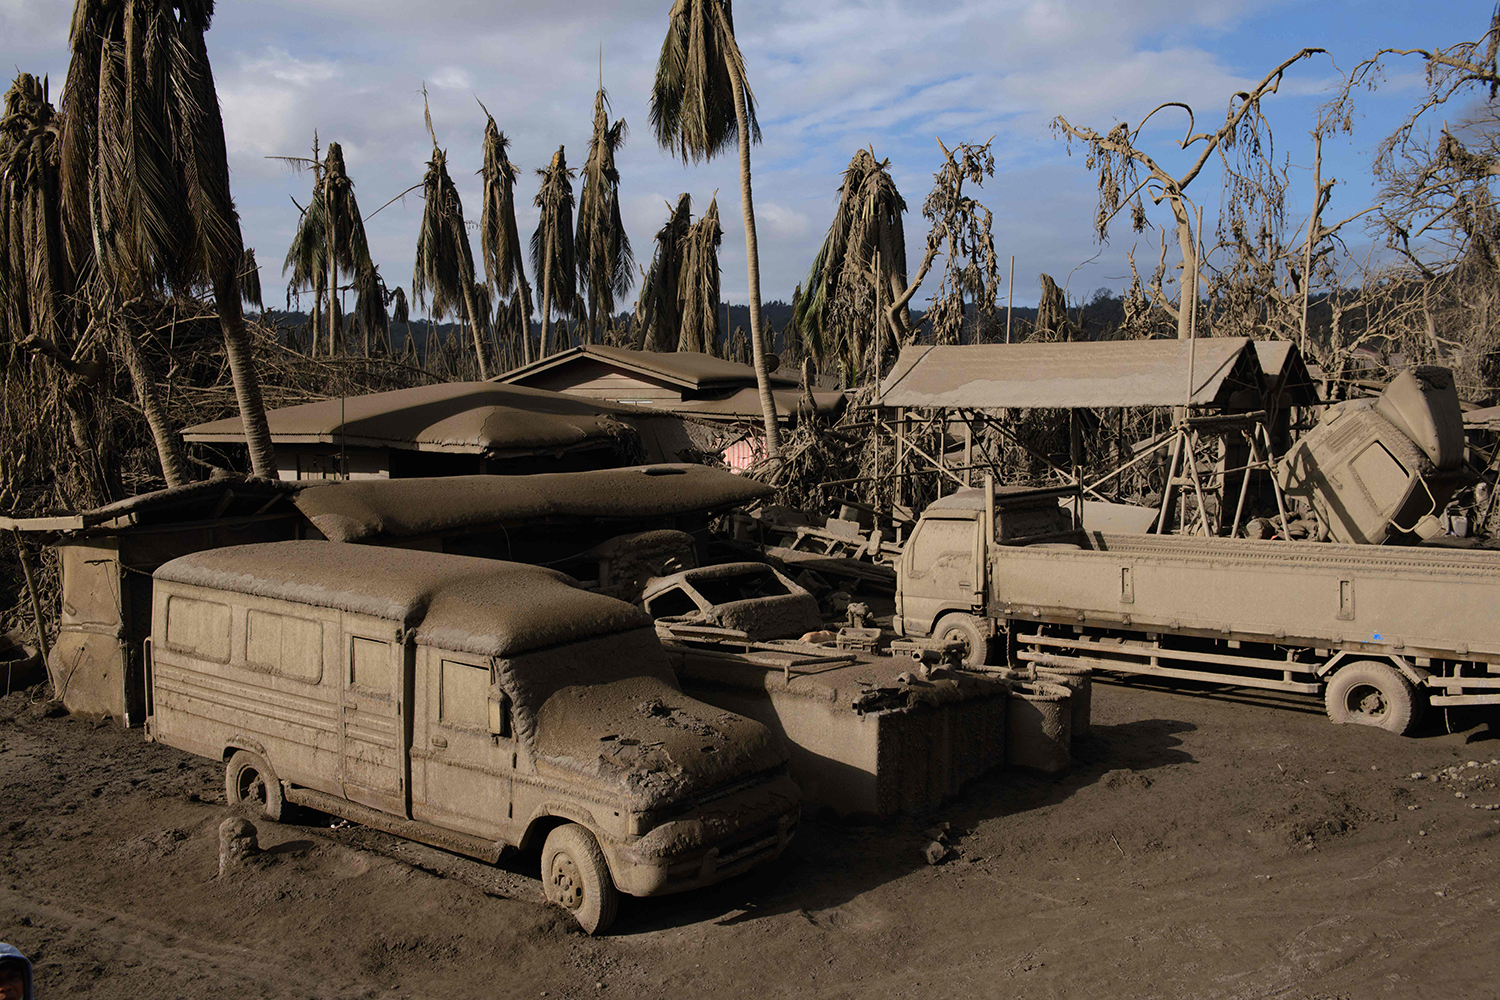 Vehicles are covered in ash from the eruption of the Taal volcano, near Agoncillo, in the Philippines on Jan. 20. ED JONES/AFP via Getty Images